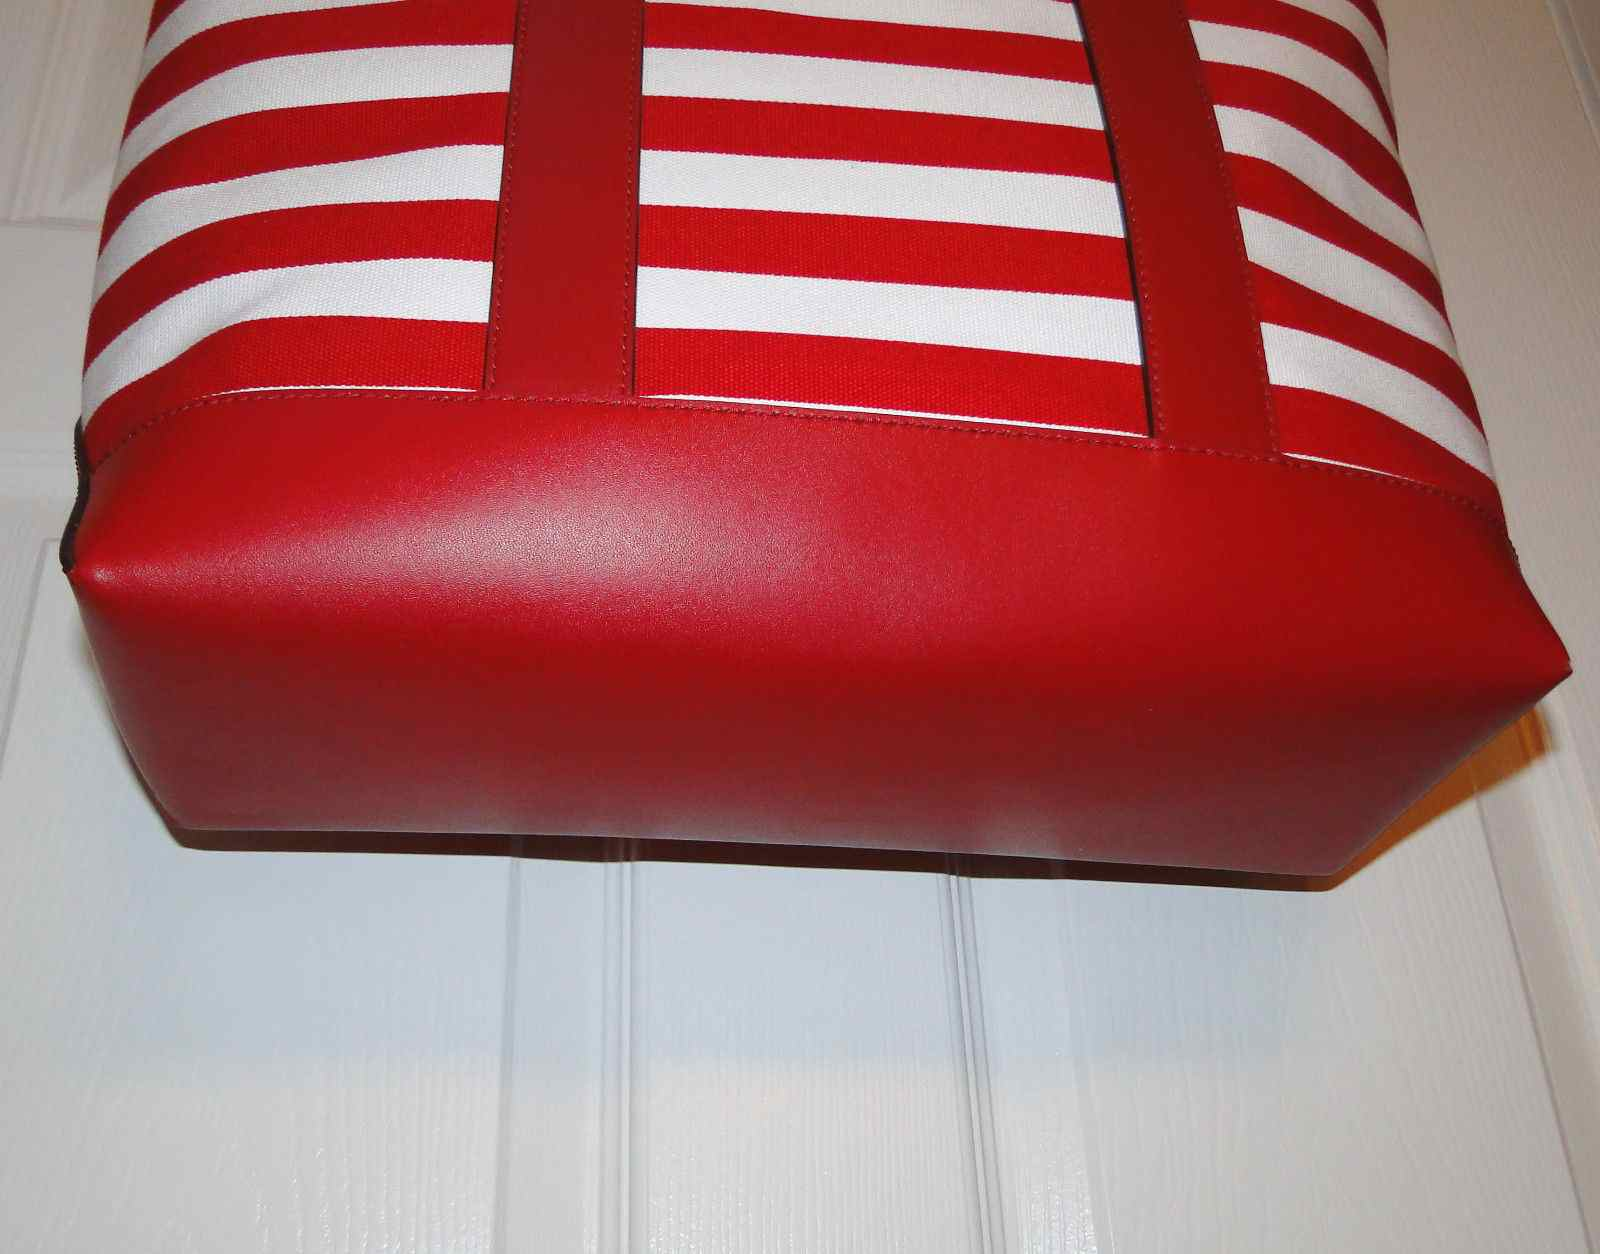 Michael Kors Fulton Canvas Striped Tote Shopper Bag Red & White